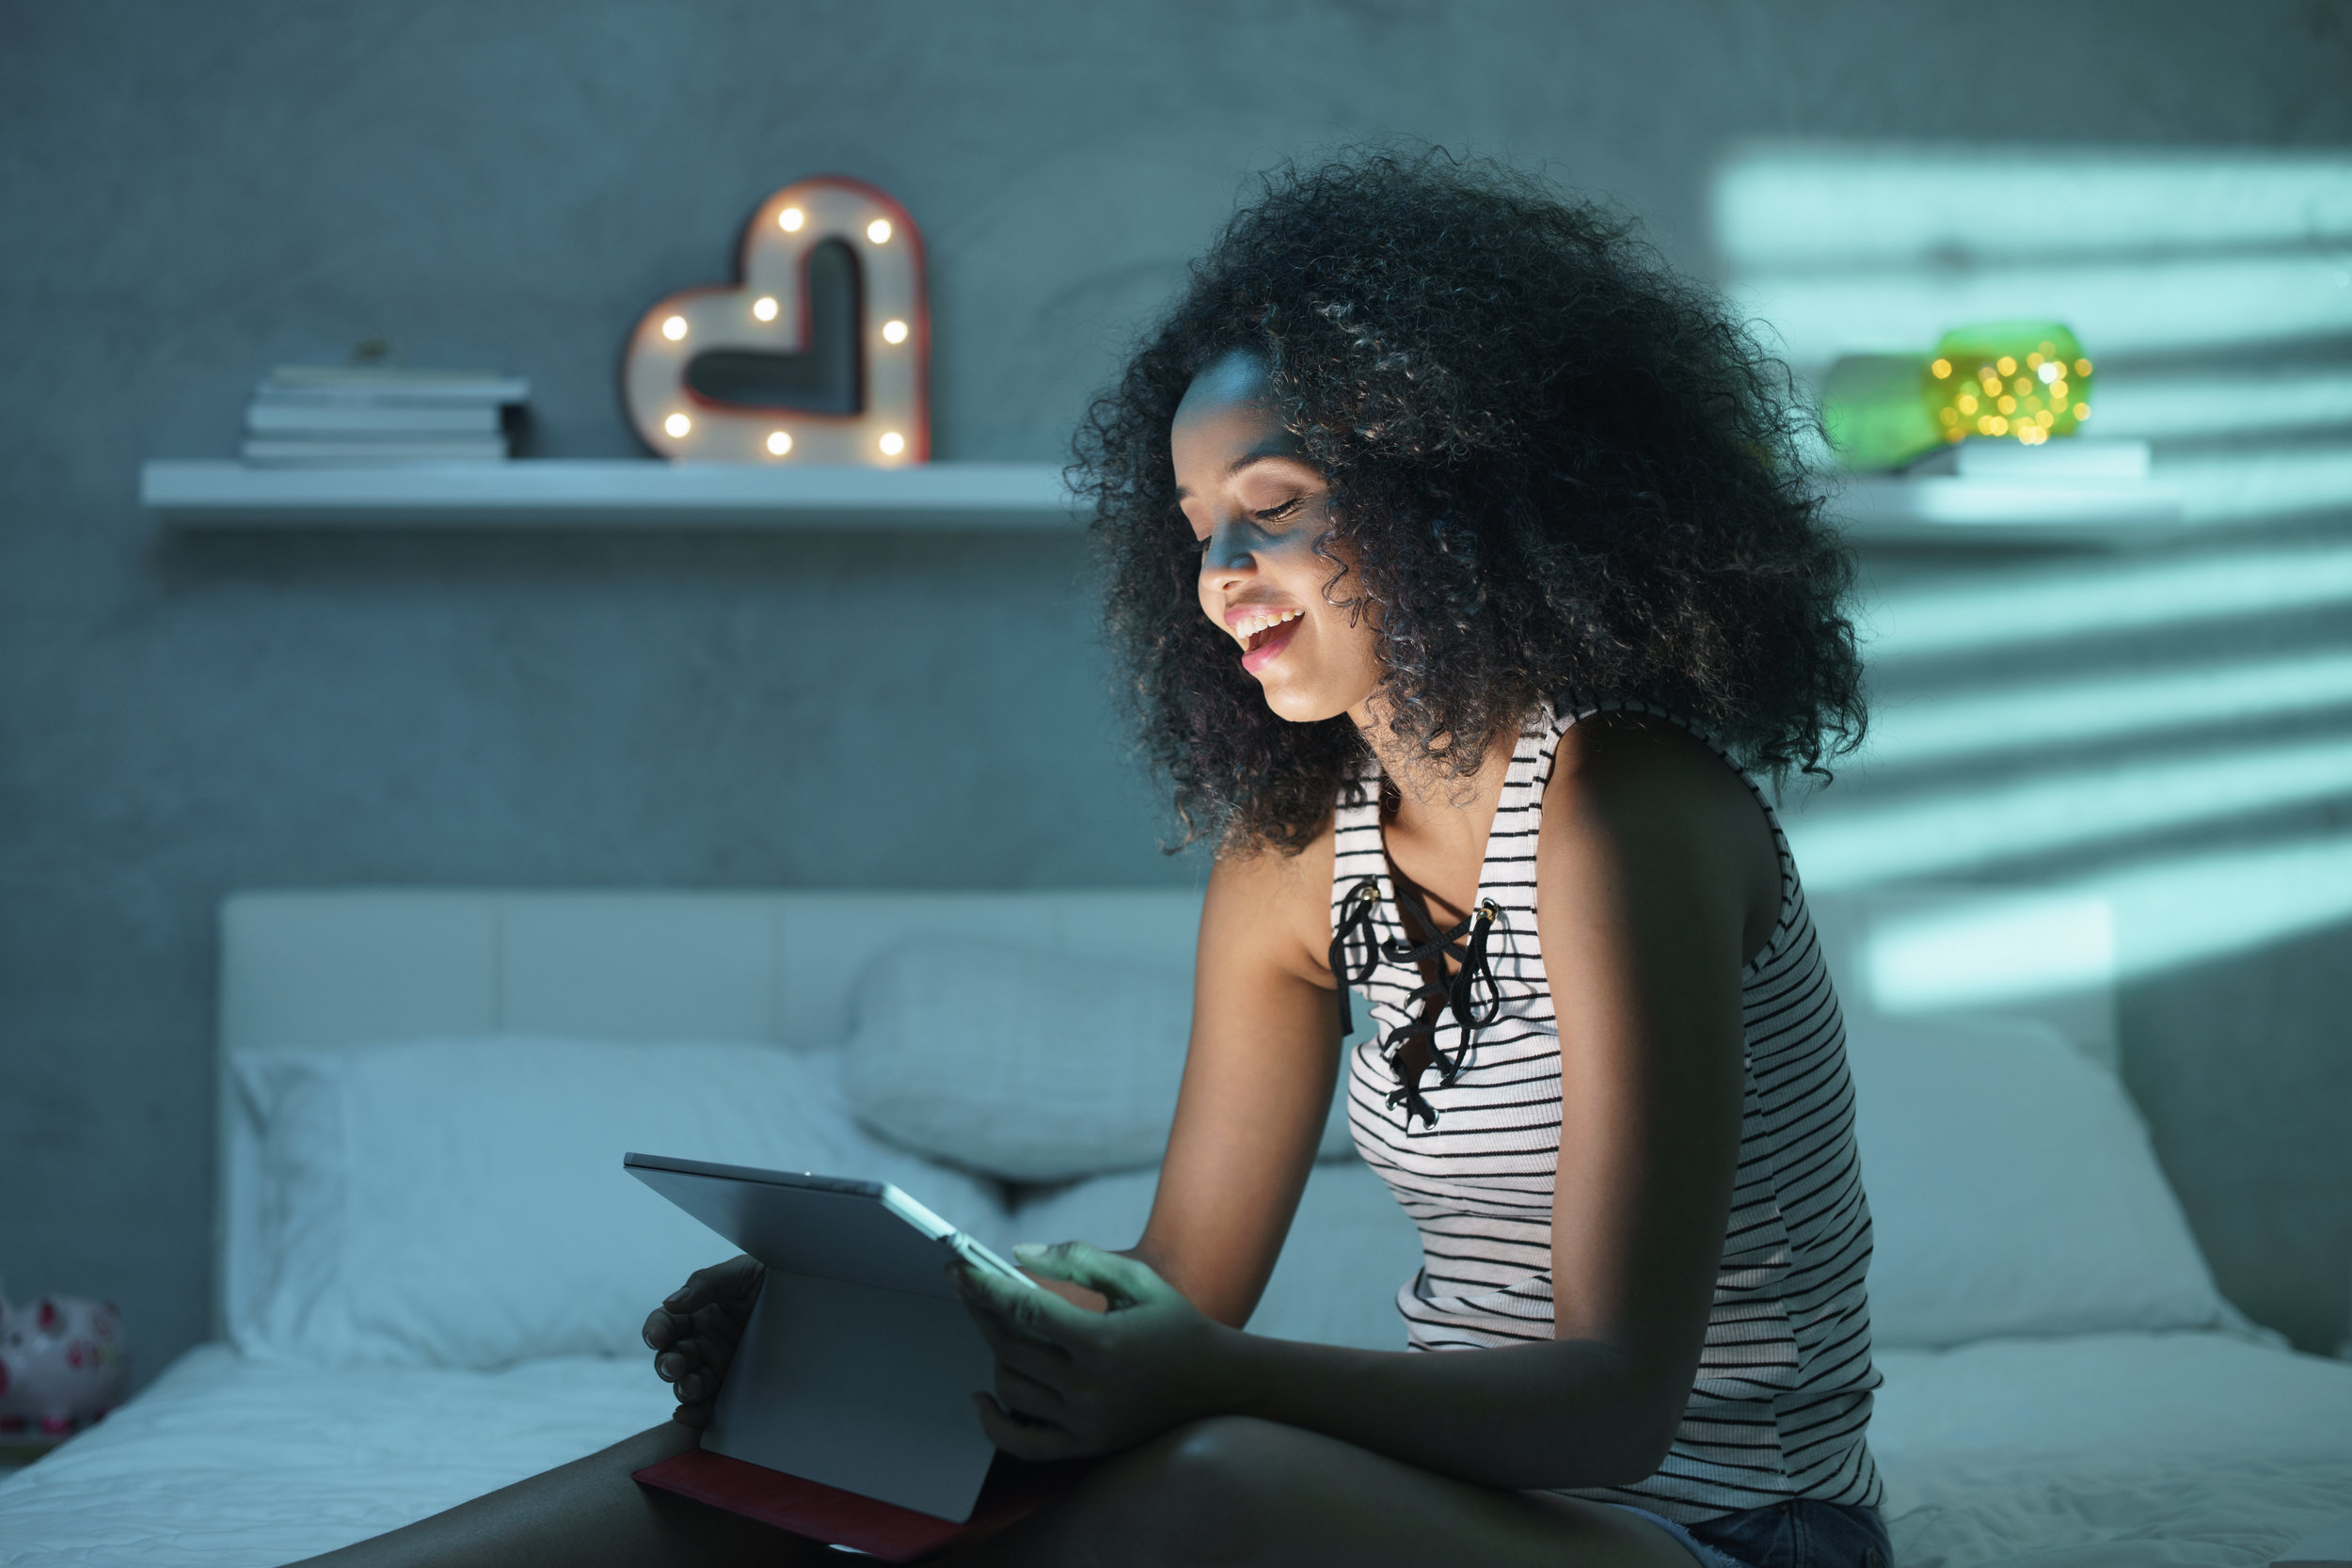 young-black-woman-watching-movie-with-laptop-at-6MYALQV.jpg